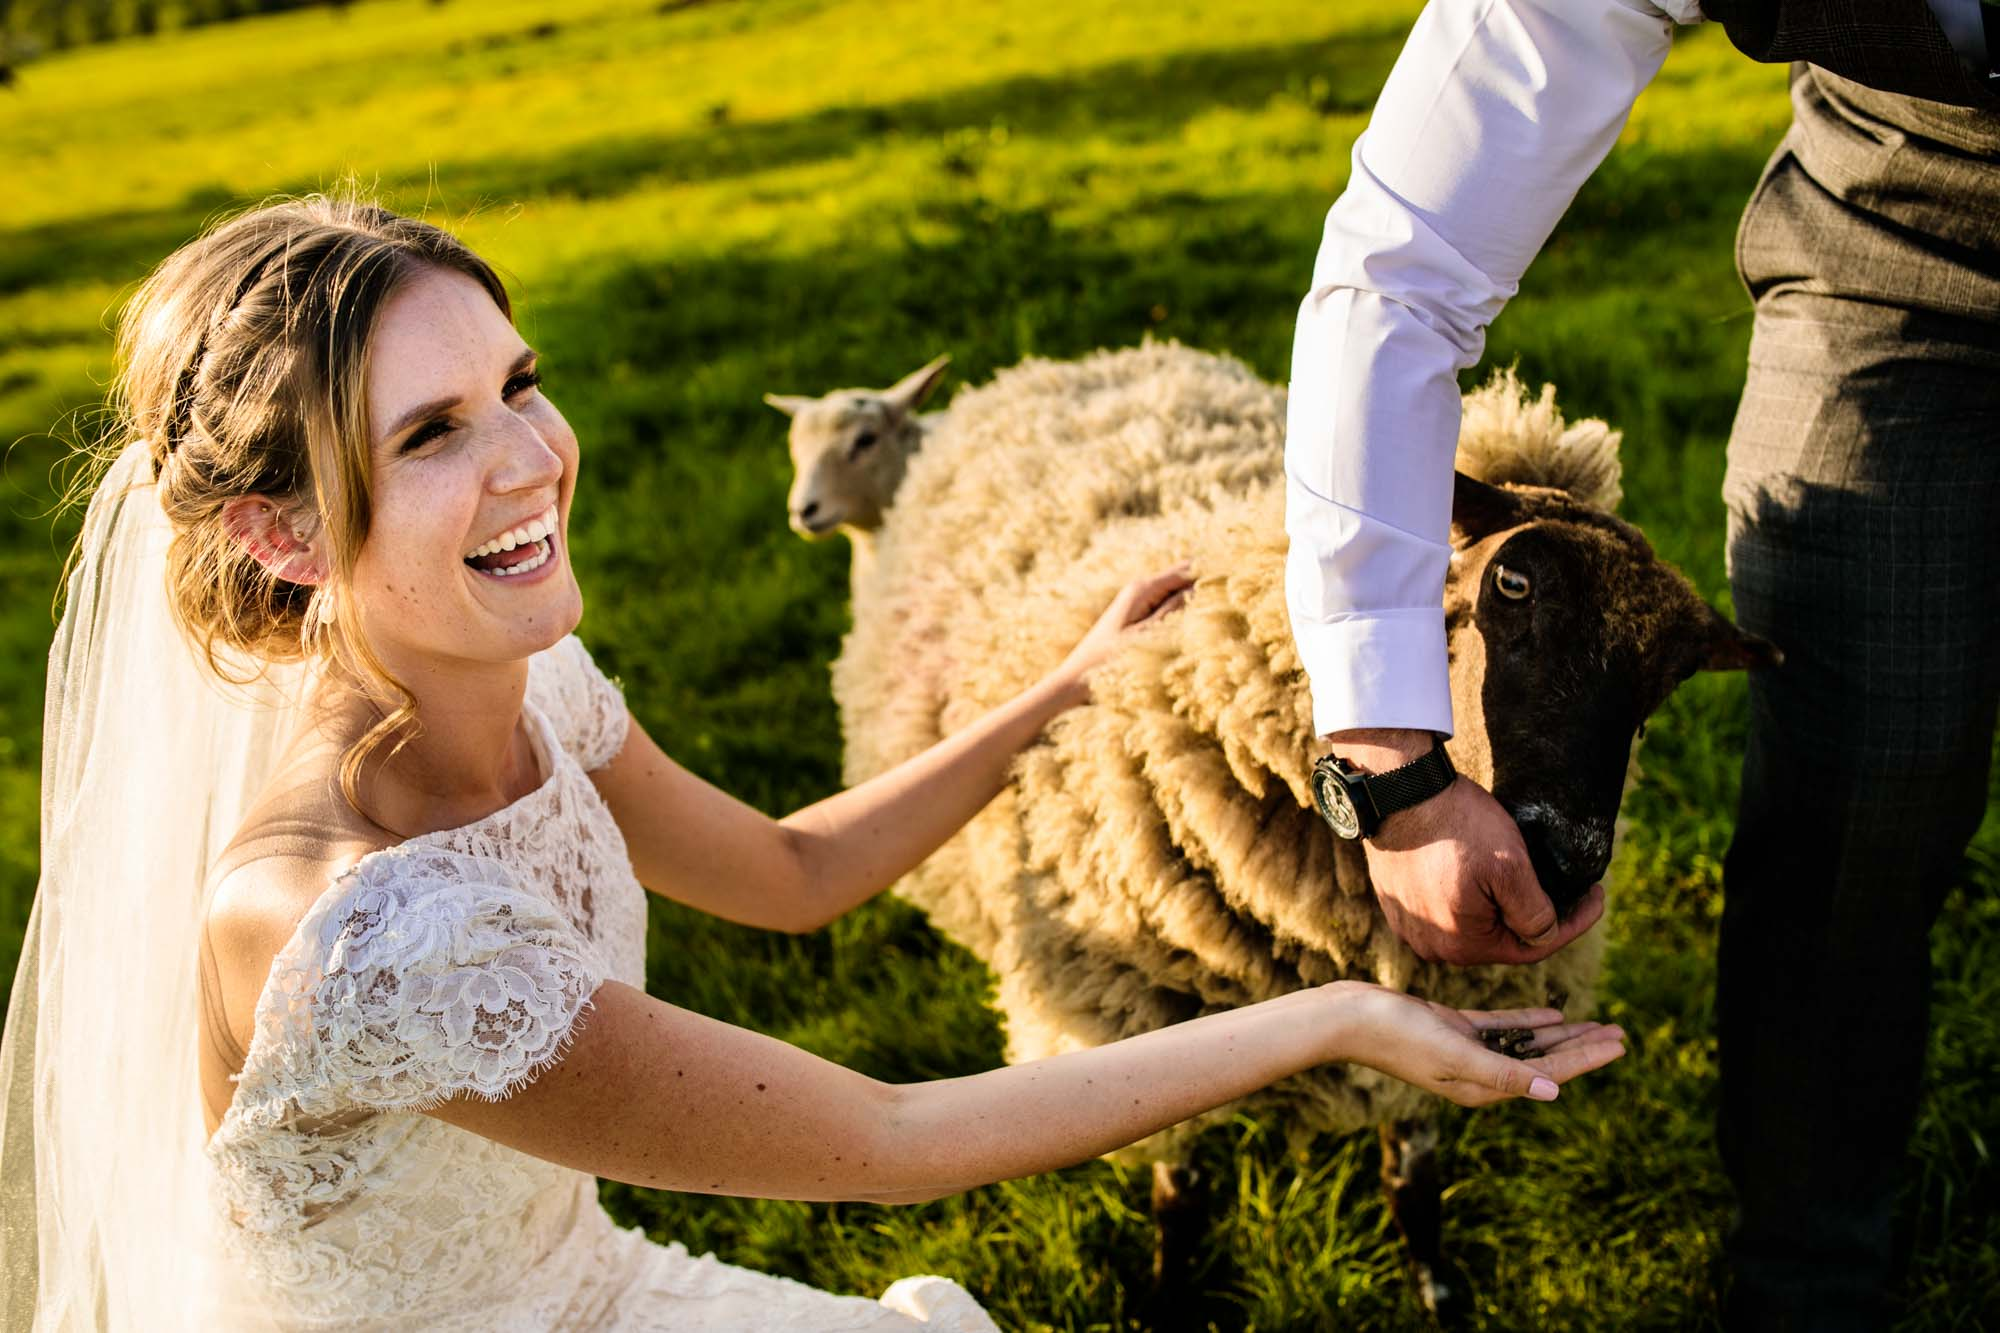 Thornsett Fields Farm Wedding Photographs